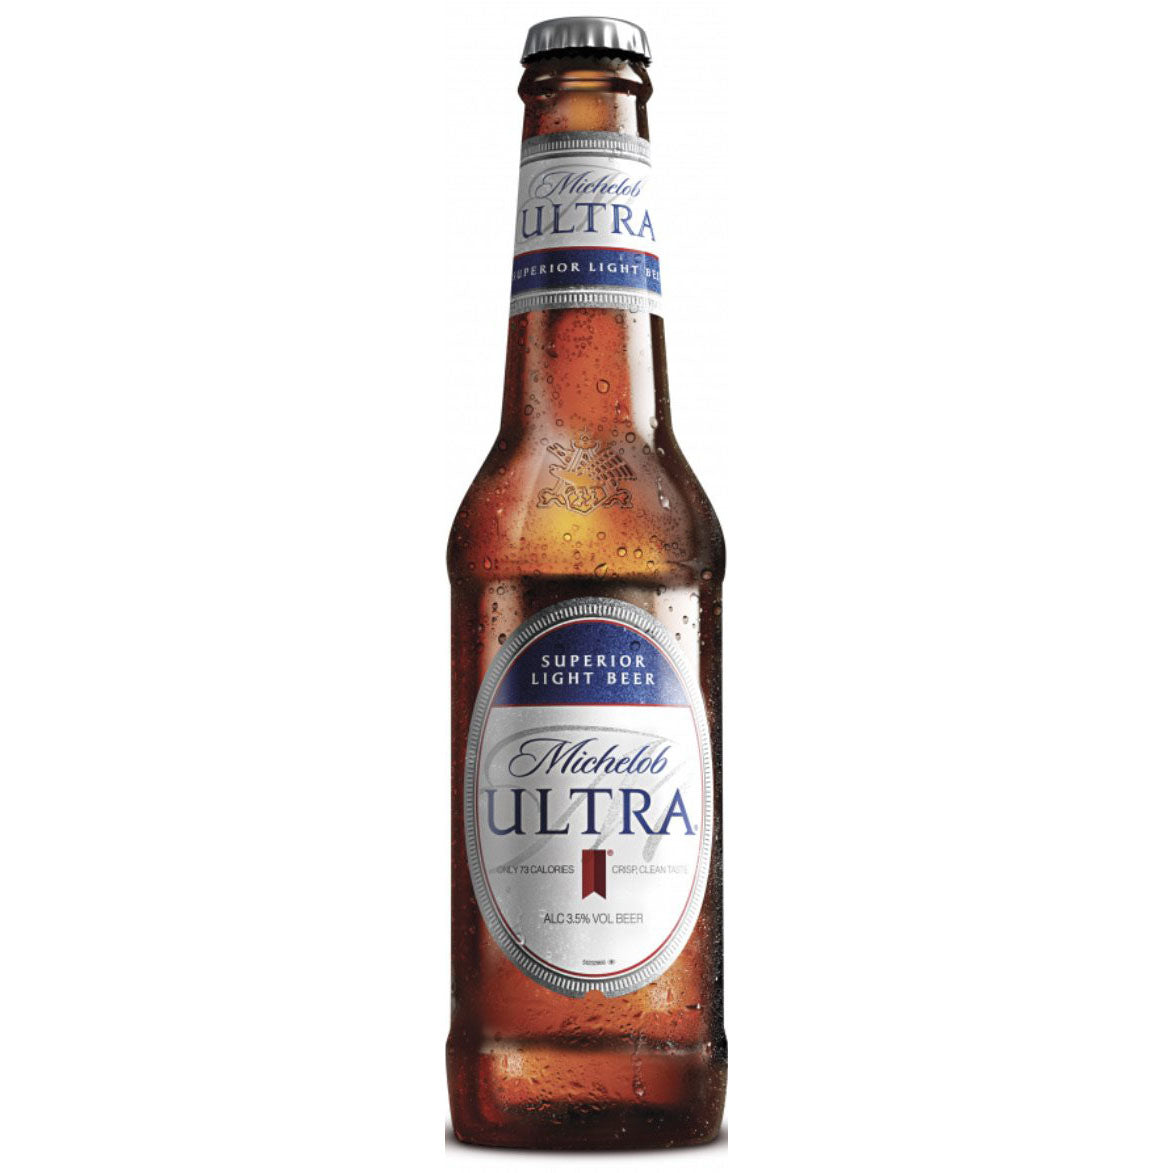 Michelob ULTRA superior light beer 73 calories (24x330ml) - Bodega Movil